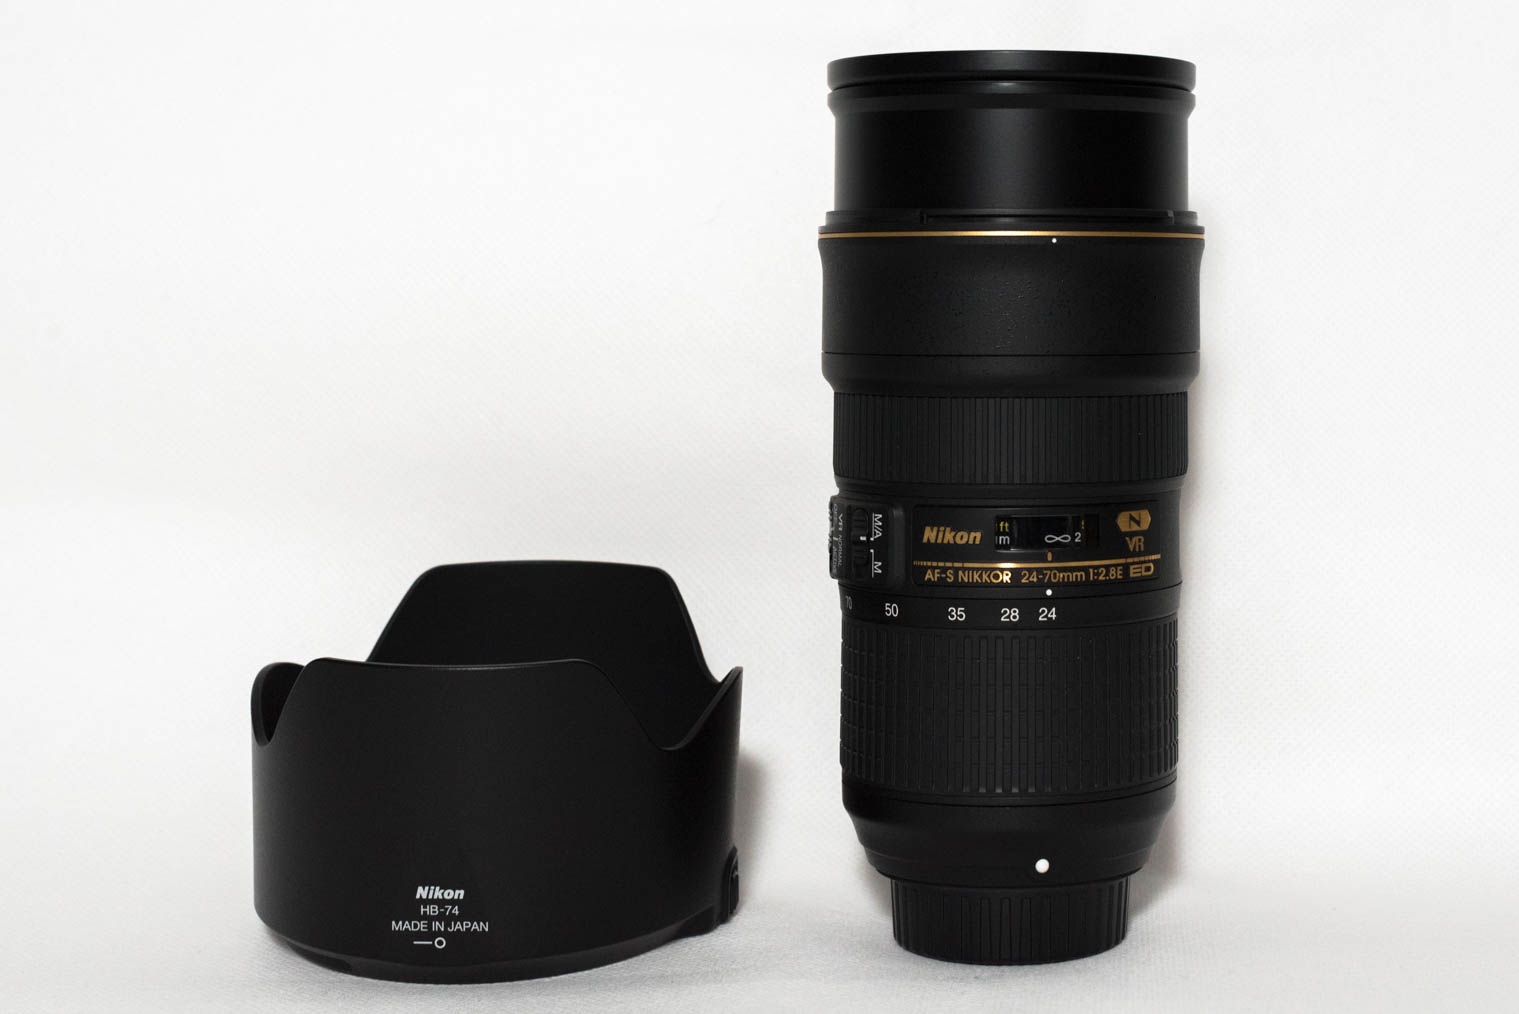 Nikon AF-S Nikkor 24-70 mm f/2.8 ED VR at 24 mm and the lens hood